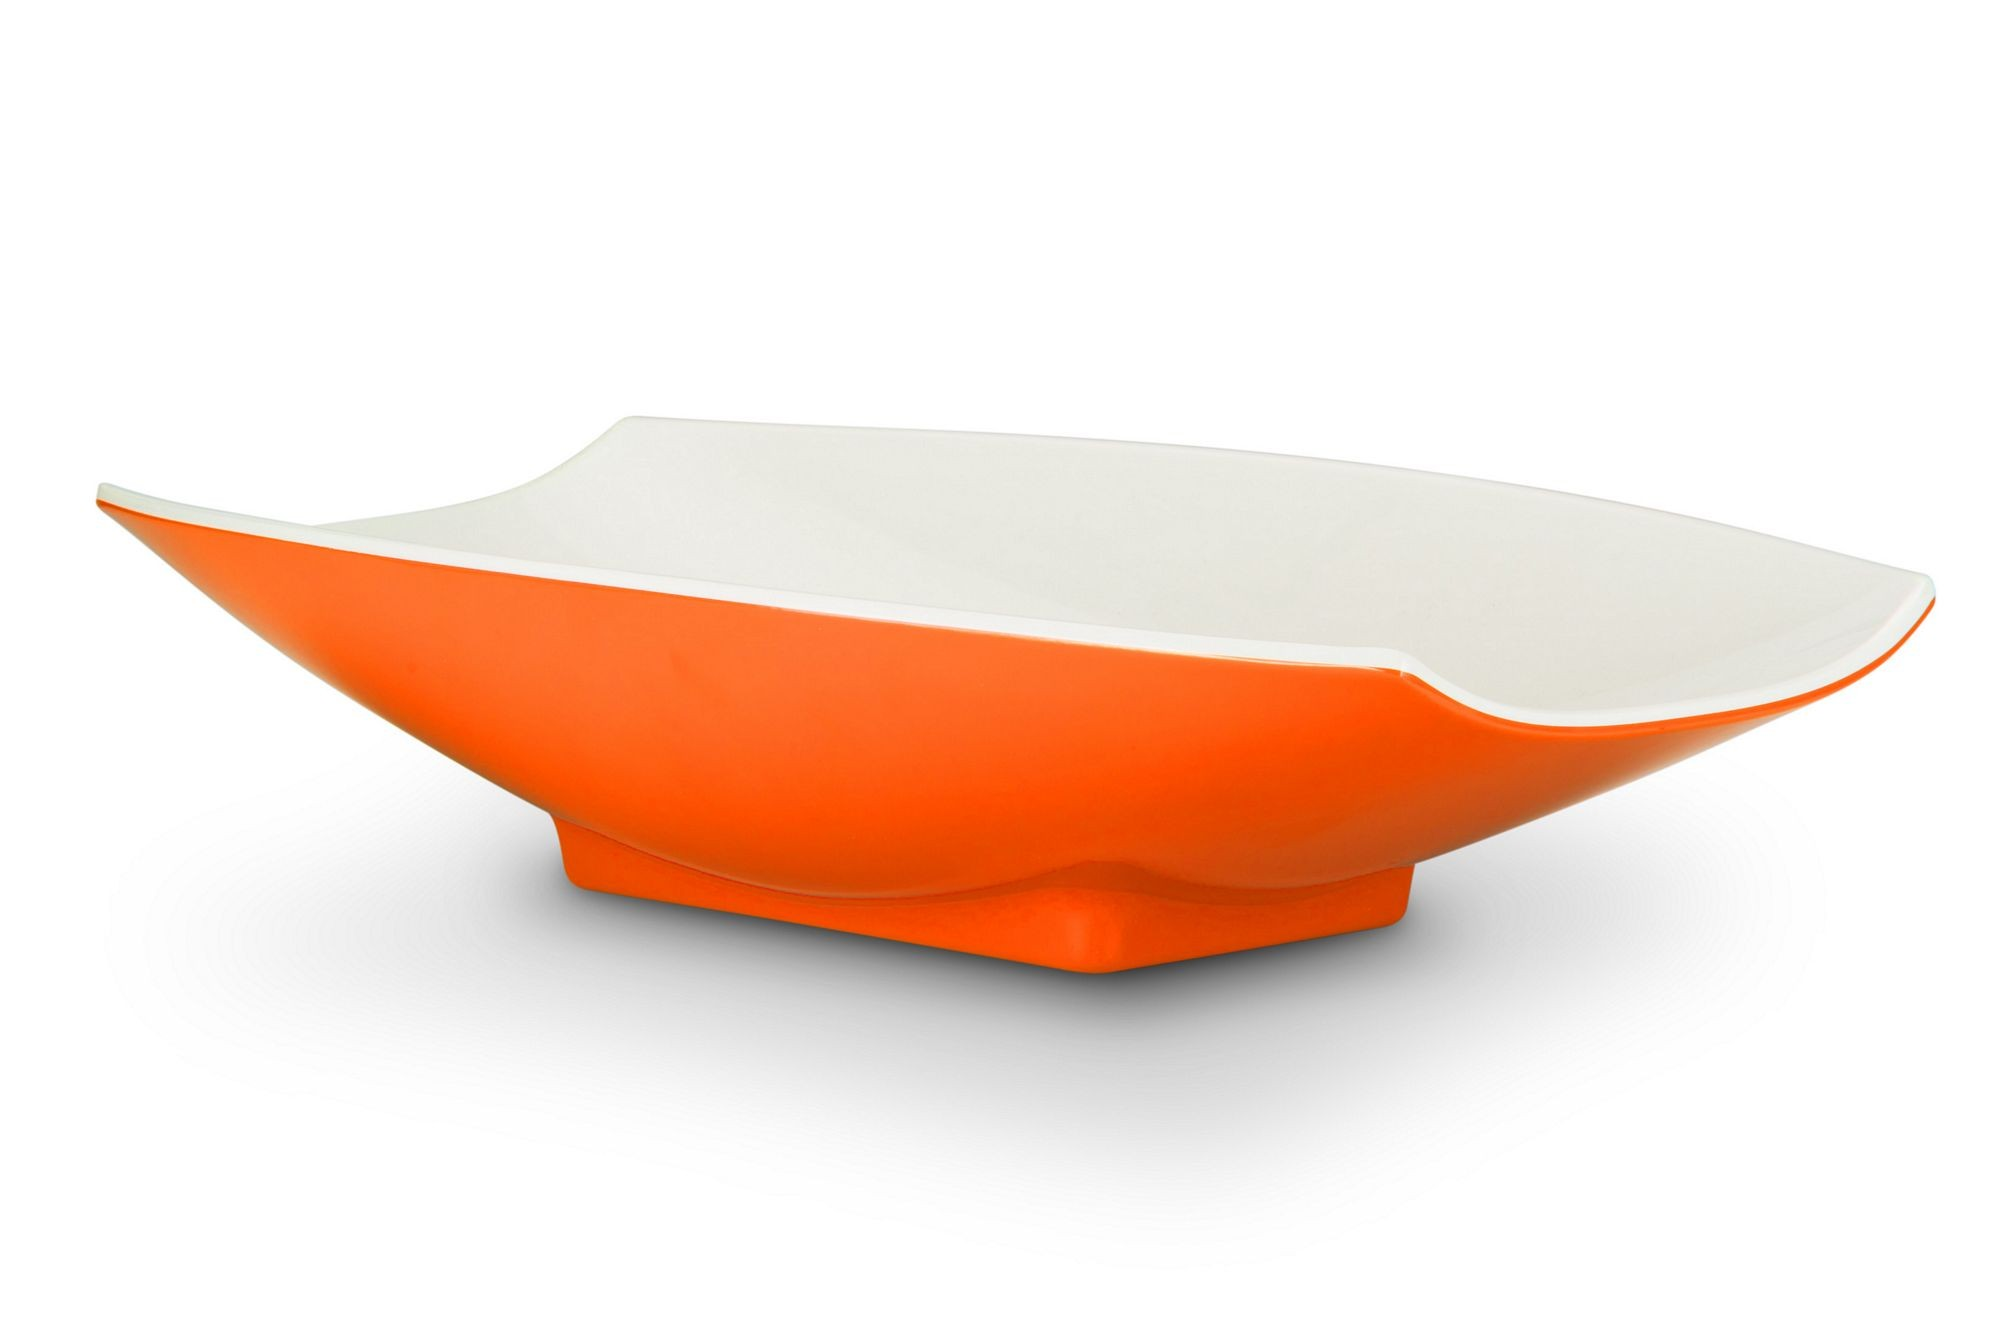 Bon Chef 53705-2ToneOrange Melamine Curves Bowl, Orange Outside/White Inside 5 Qt.